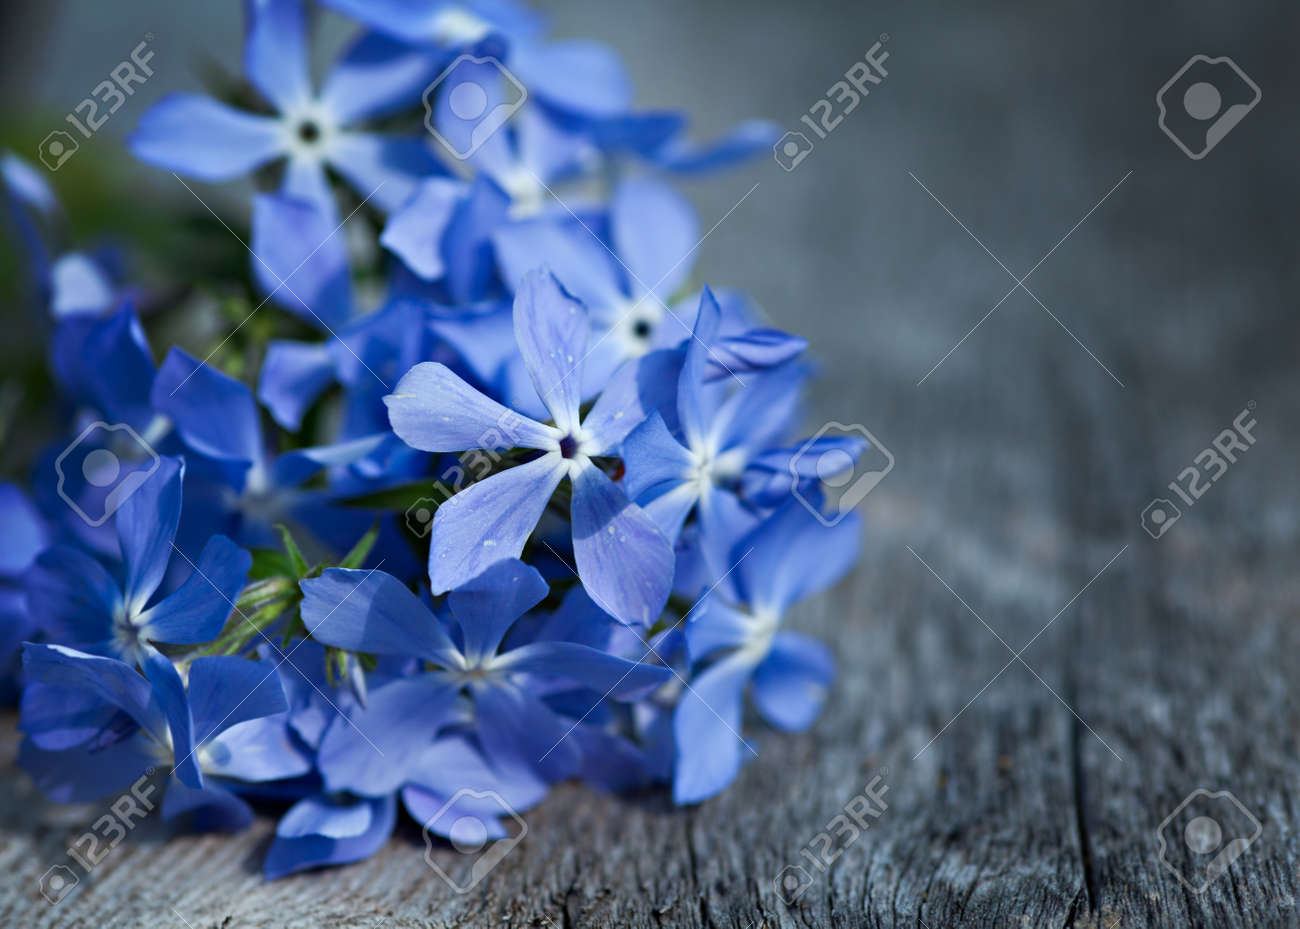 Blue spring flowers on wooden table stock photo picture and royalty blue spring flowers on wooden table stock photo 19267972 mightylinksfo